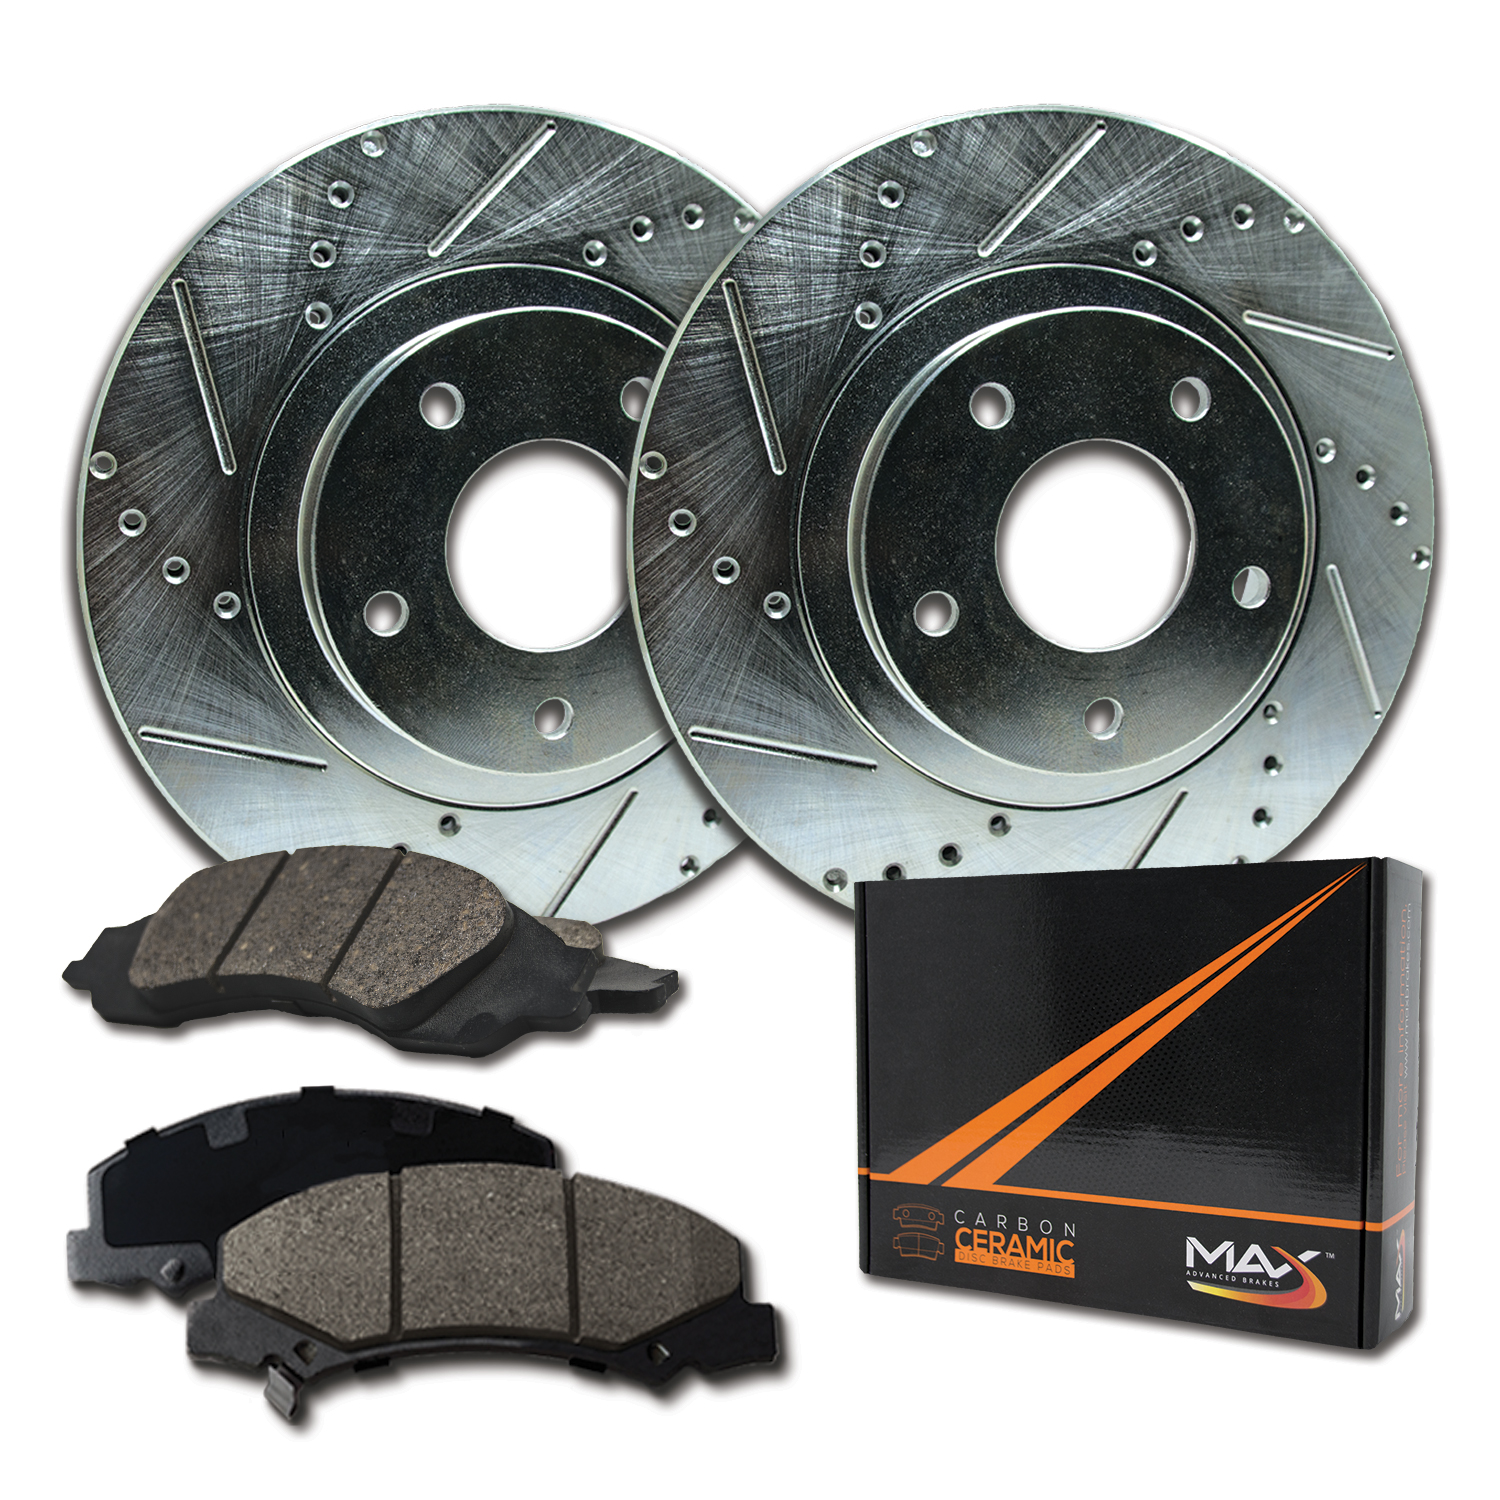 Max Brakes Front /& Rear Performance Brake Kit KT065733 Fits: 2005 05 2006 06 Cadillac CTS w// FE1 Soft Ride Suspension; Non CTS-V Models Premium Slotted Drilled Rotors + Ceramic Pads